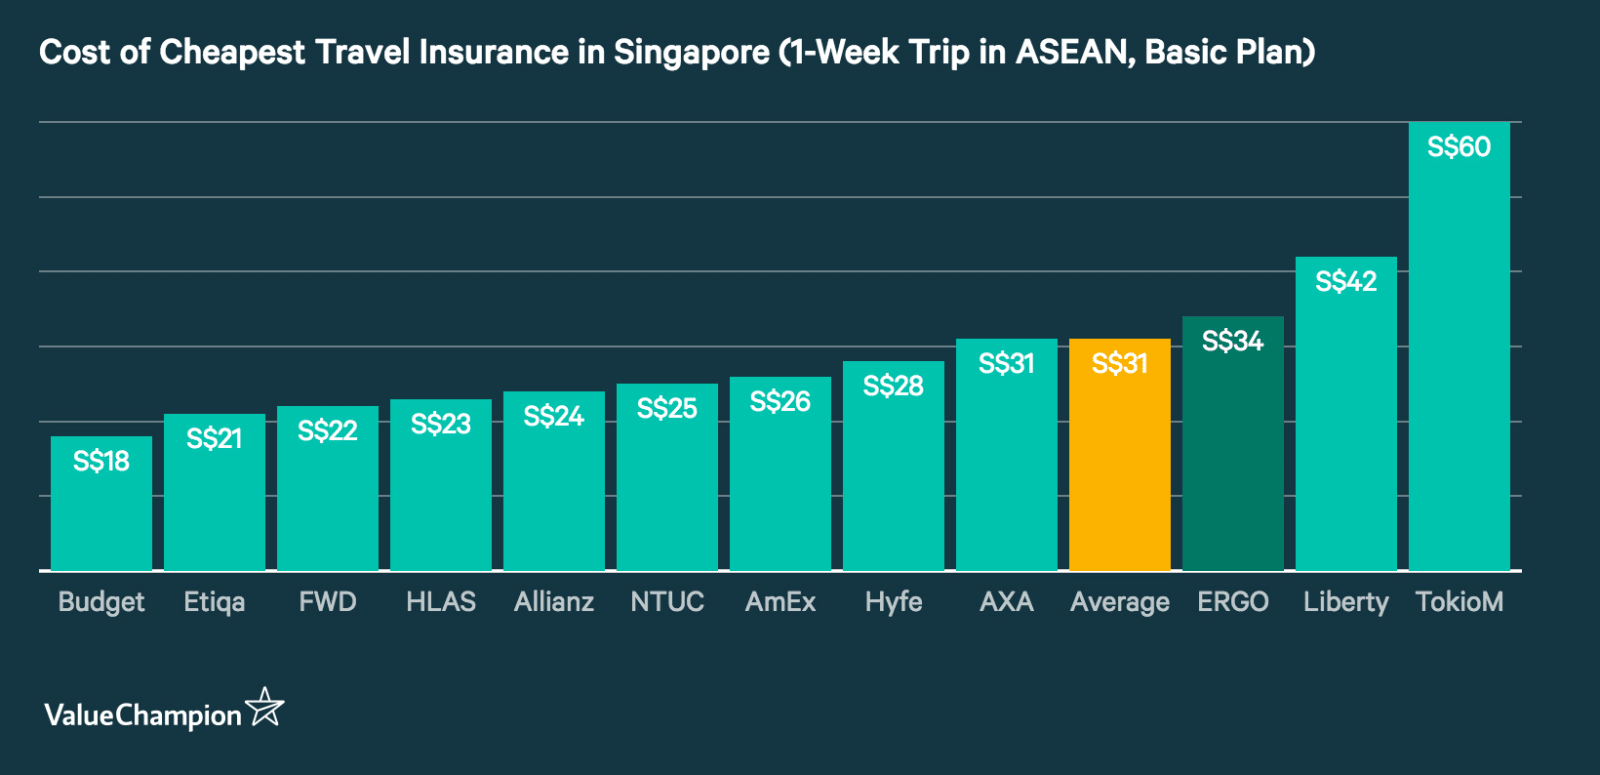 This graph shows the cheapest travel insurance premiums for a 1-week trip to the ASEAN region